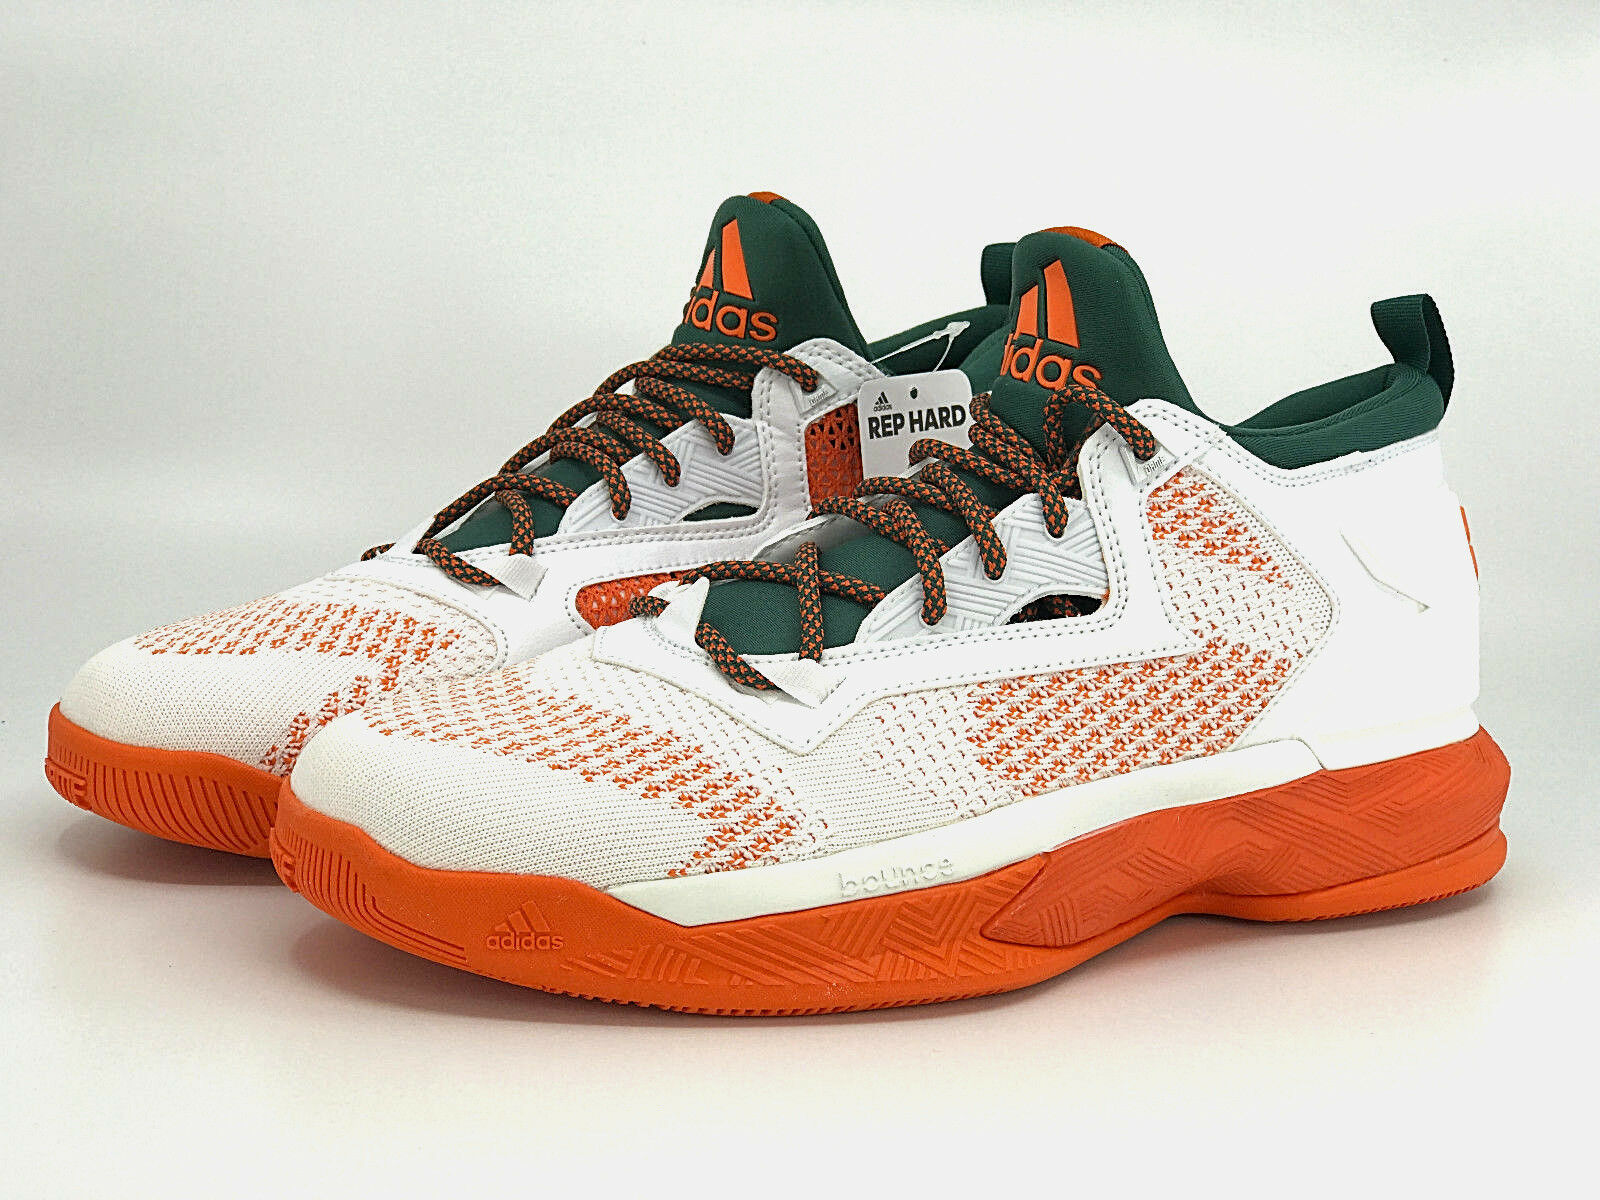 Adidas Dame 2 D LILLARD 2 WHITE PK NBA BASKETBALL SHOES WHITE 2 GREEN ORANGE NEW cd470d